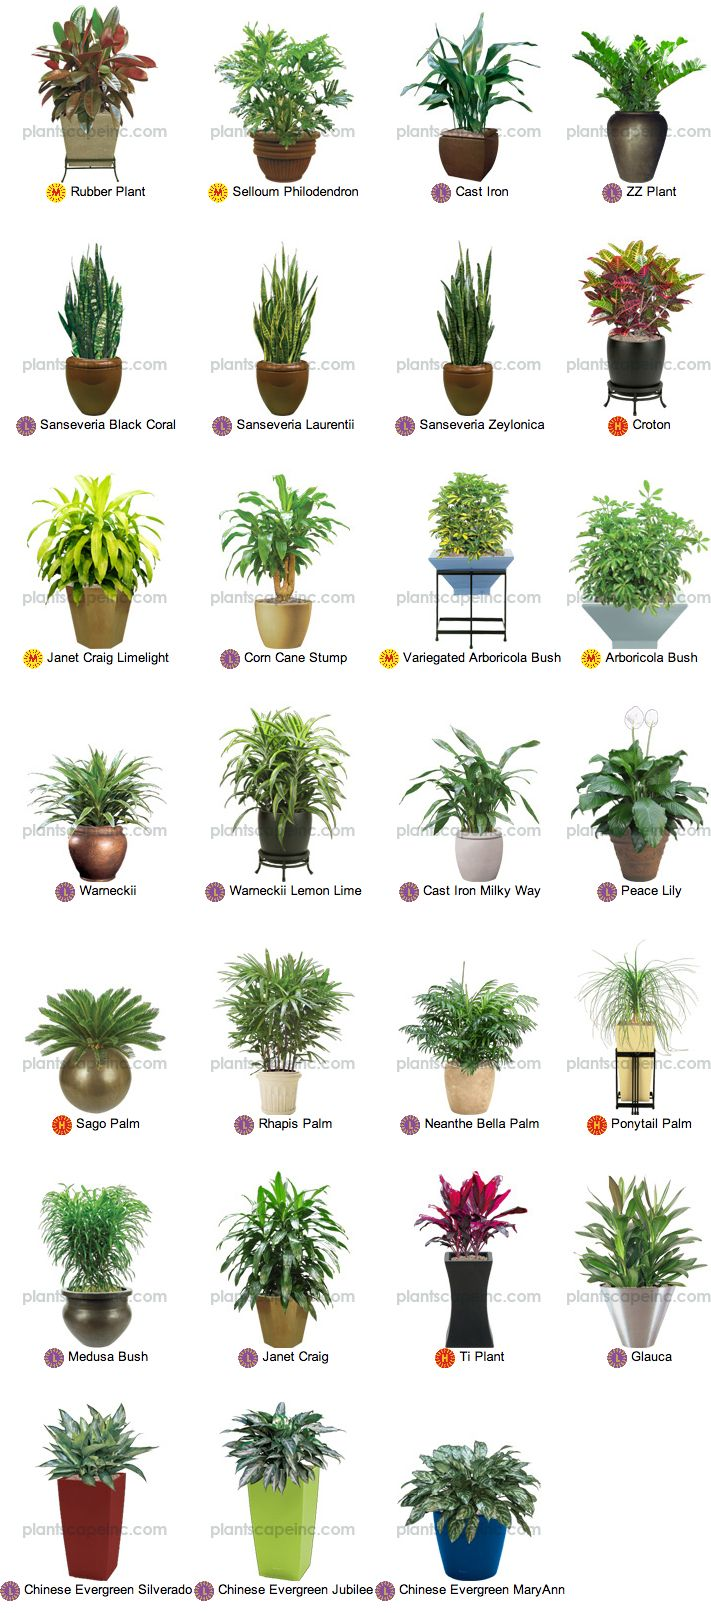 Pequenas plantas tropicais para interior horas e jardins for Planta tropical interior